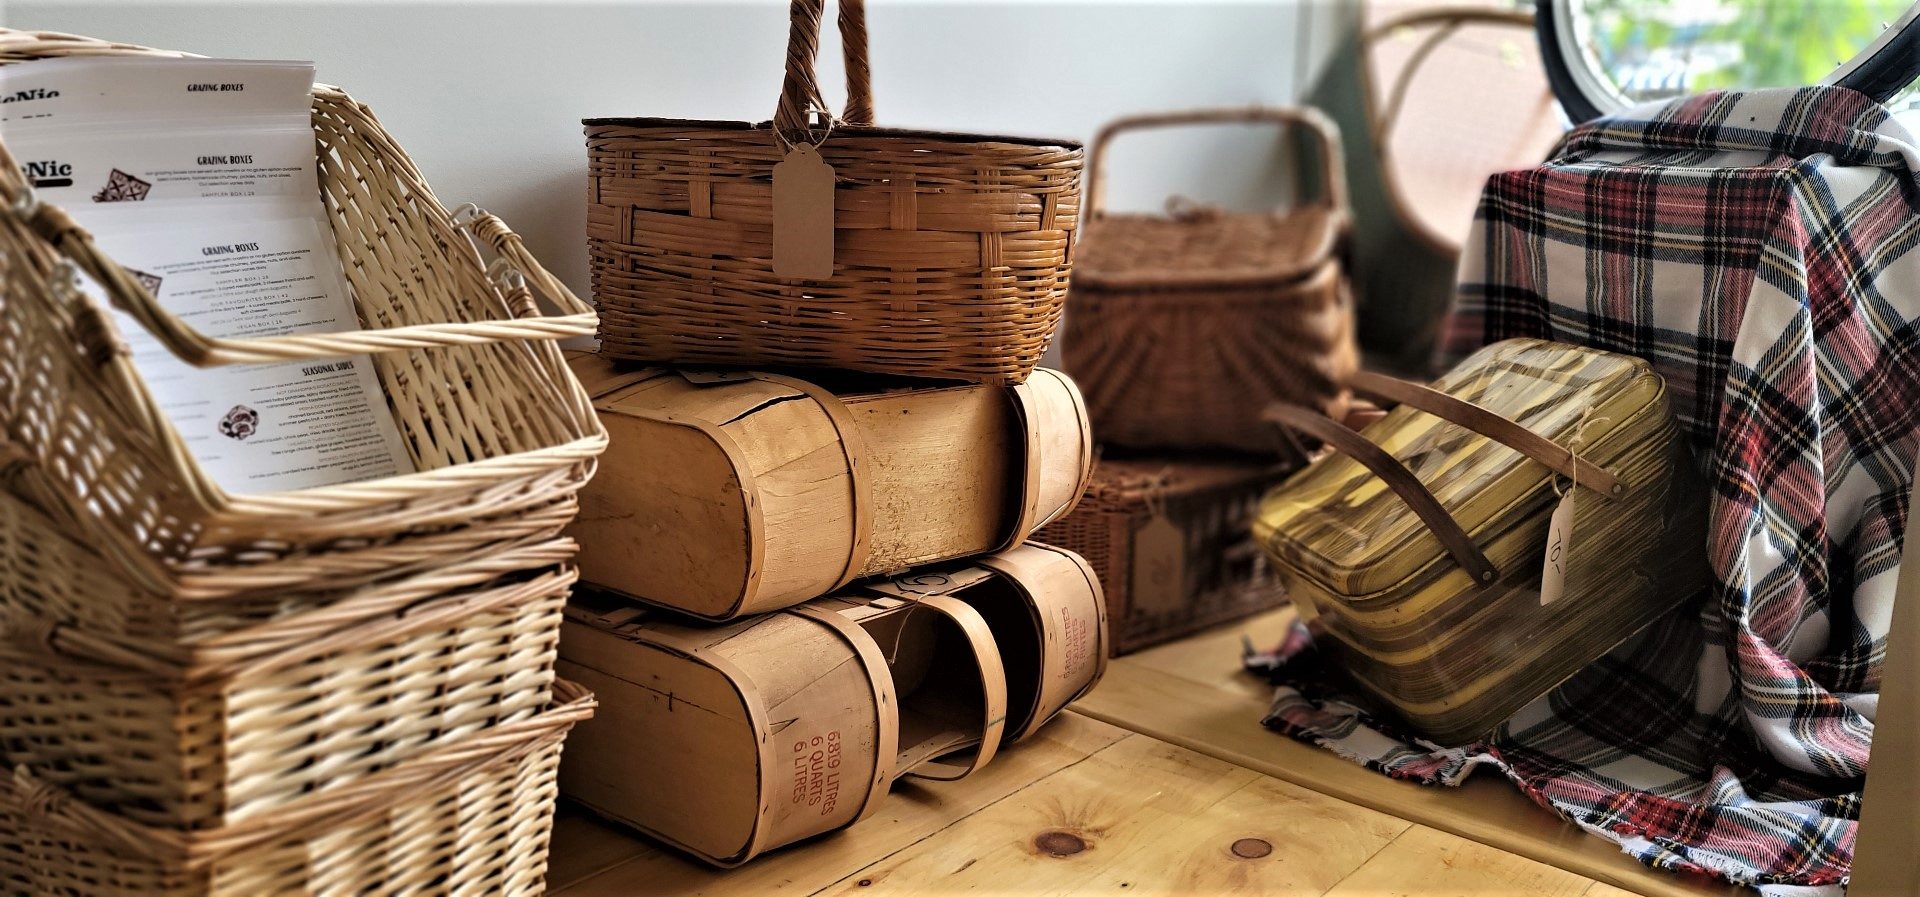 stacked picnic baskets